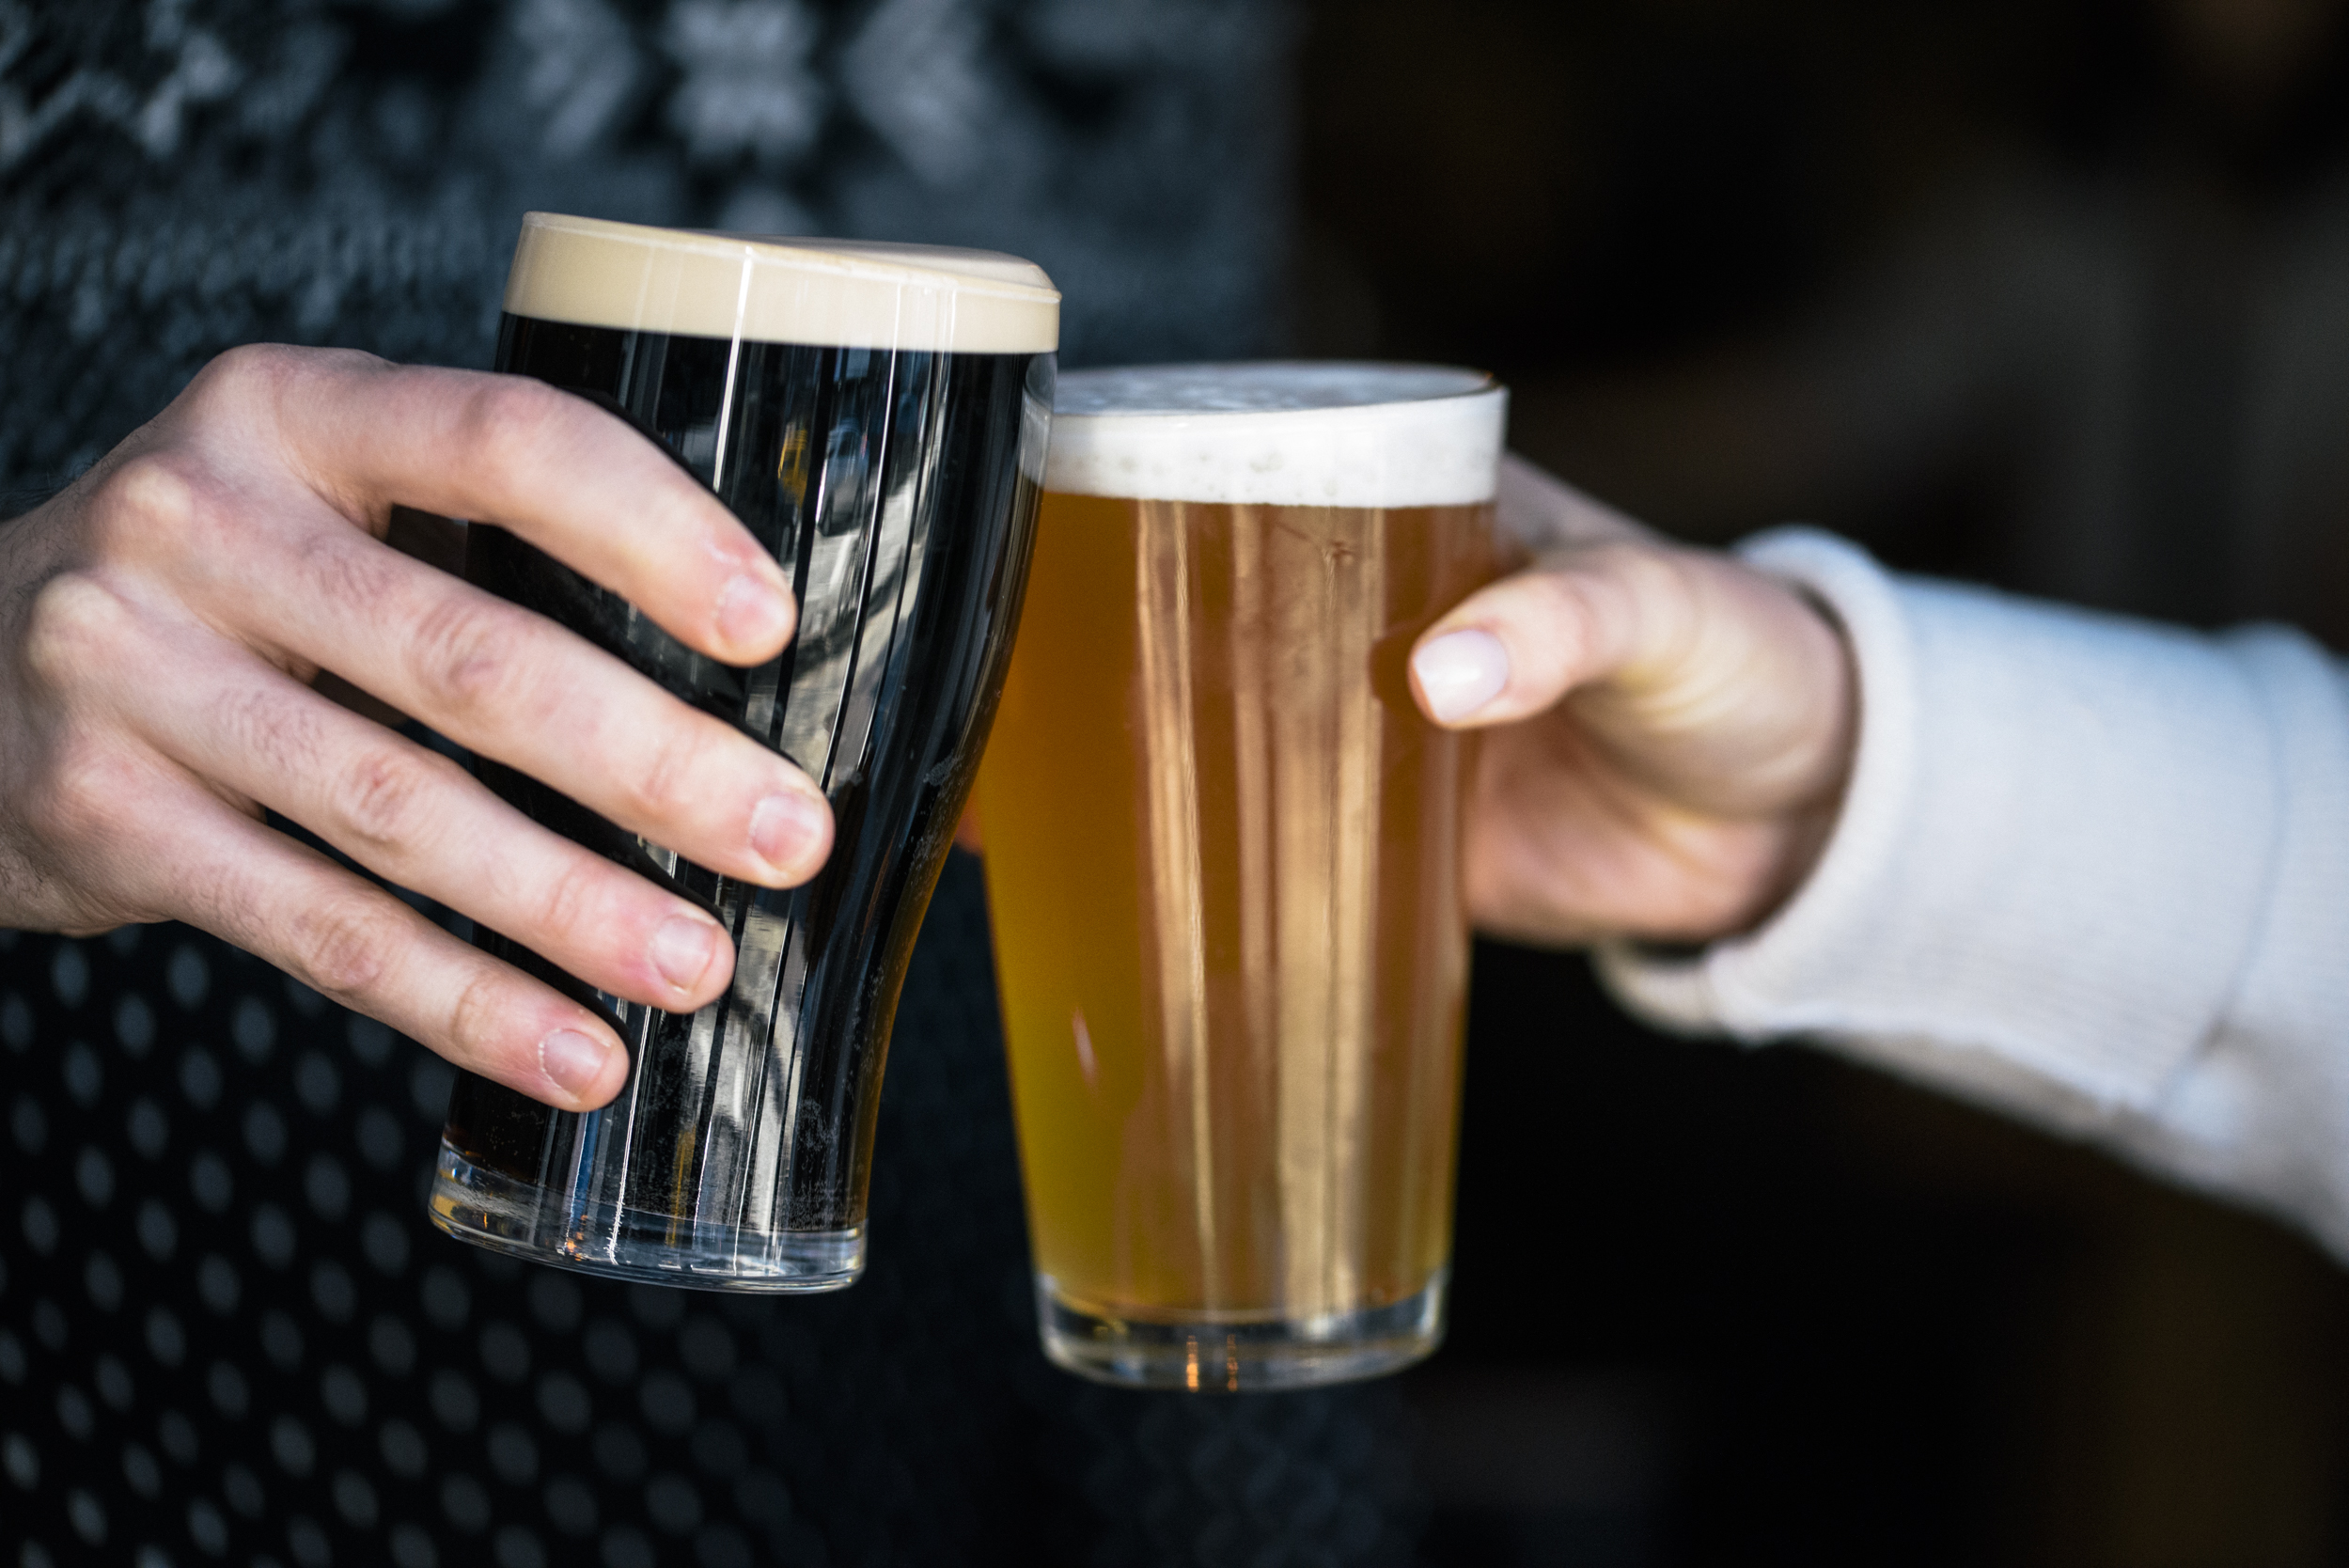 two-hands-cheersing-with-beer-glassesinhand.jpg